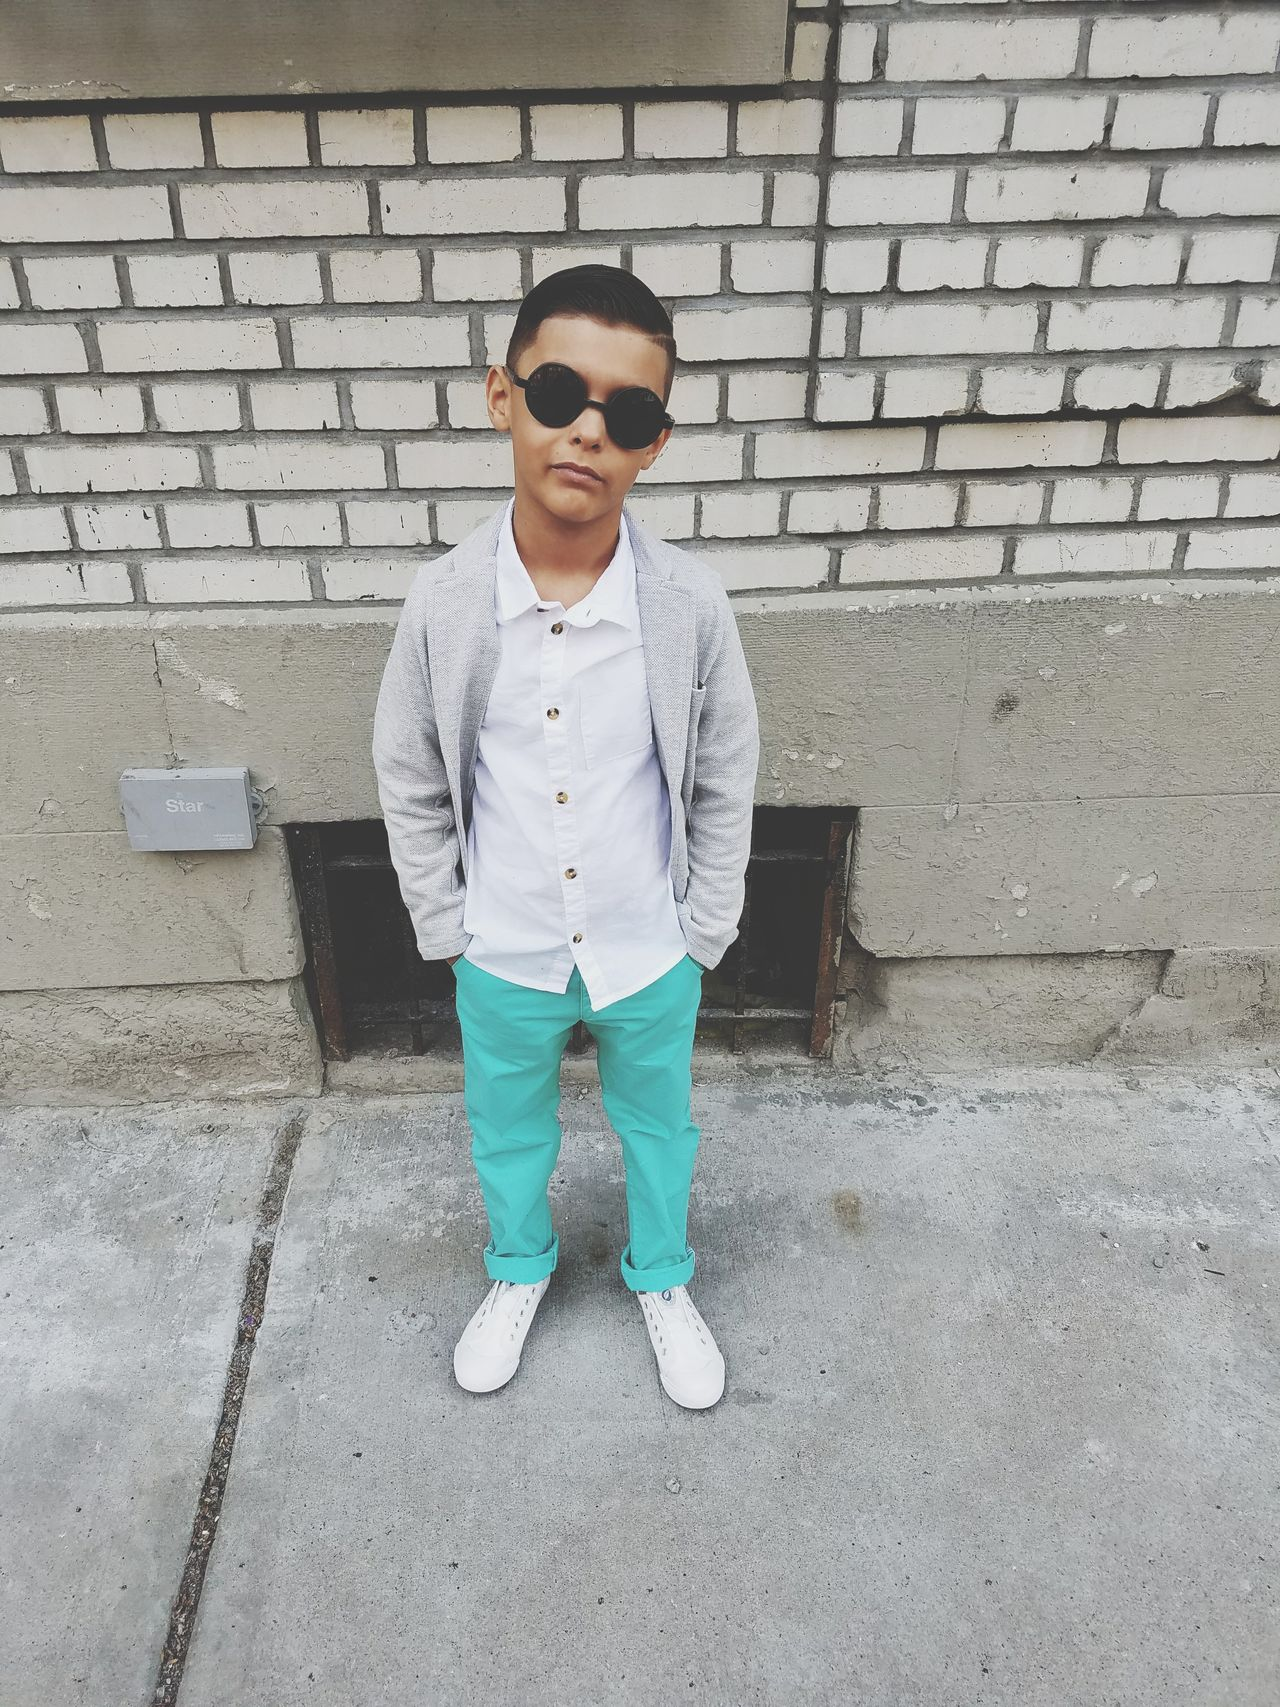 Young boy Sunglasses One Person Casual Clothing Front View Standing Fashion Outdoors Kid Boy Chinos Brick Wall Sidewalk Hipster - Person